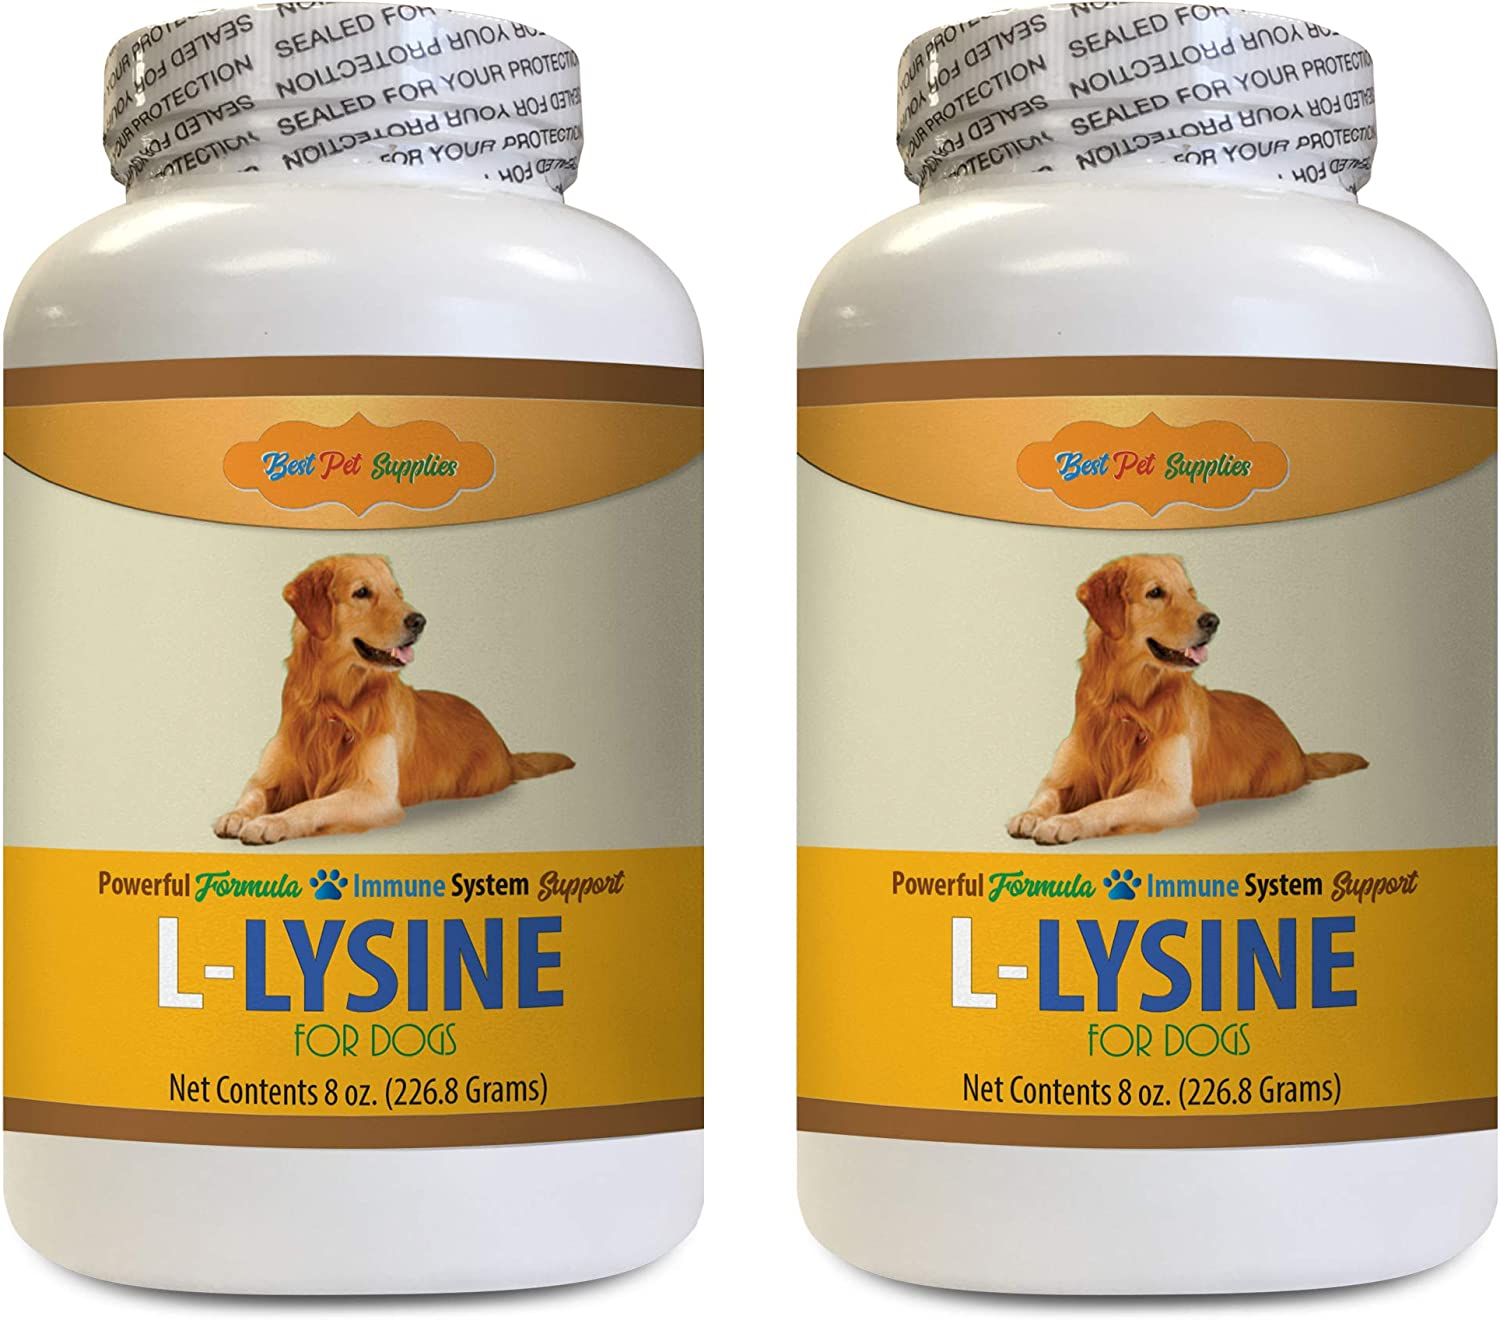 BEST PET SUPPLIES LLC Allergy Immune Bites for Dogs - L LYSINE for Dogs Powder - Powerful Immune System Support - Mix with Food - Skin Eye and Bone Health - l lysine for Dogs - 2 Bottles (16 OZ)